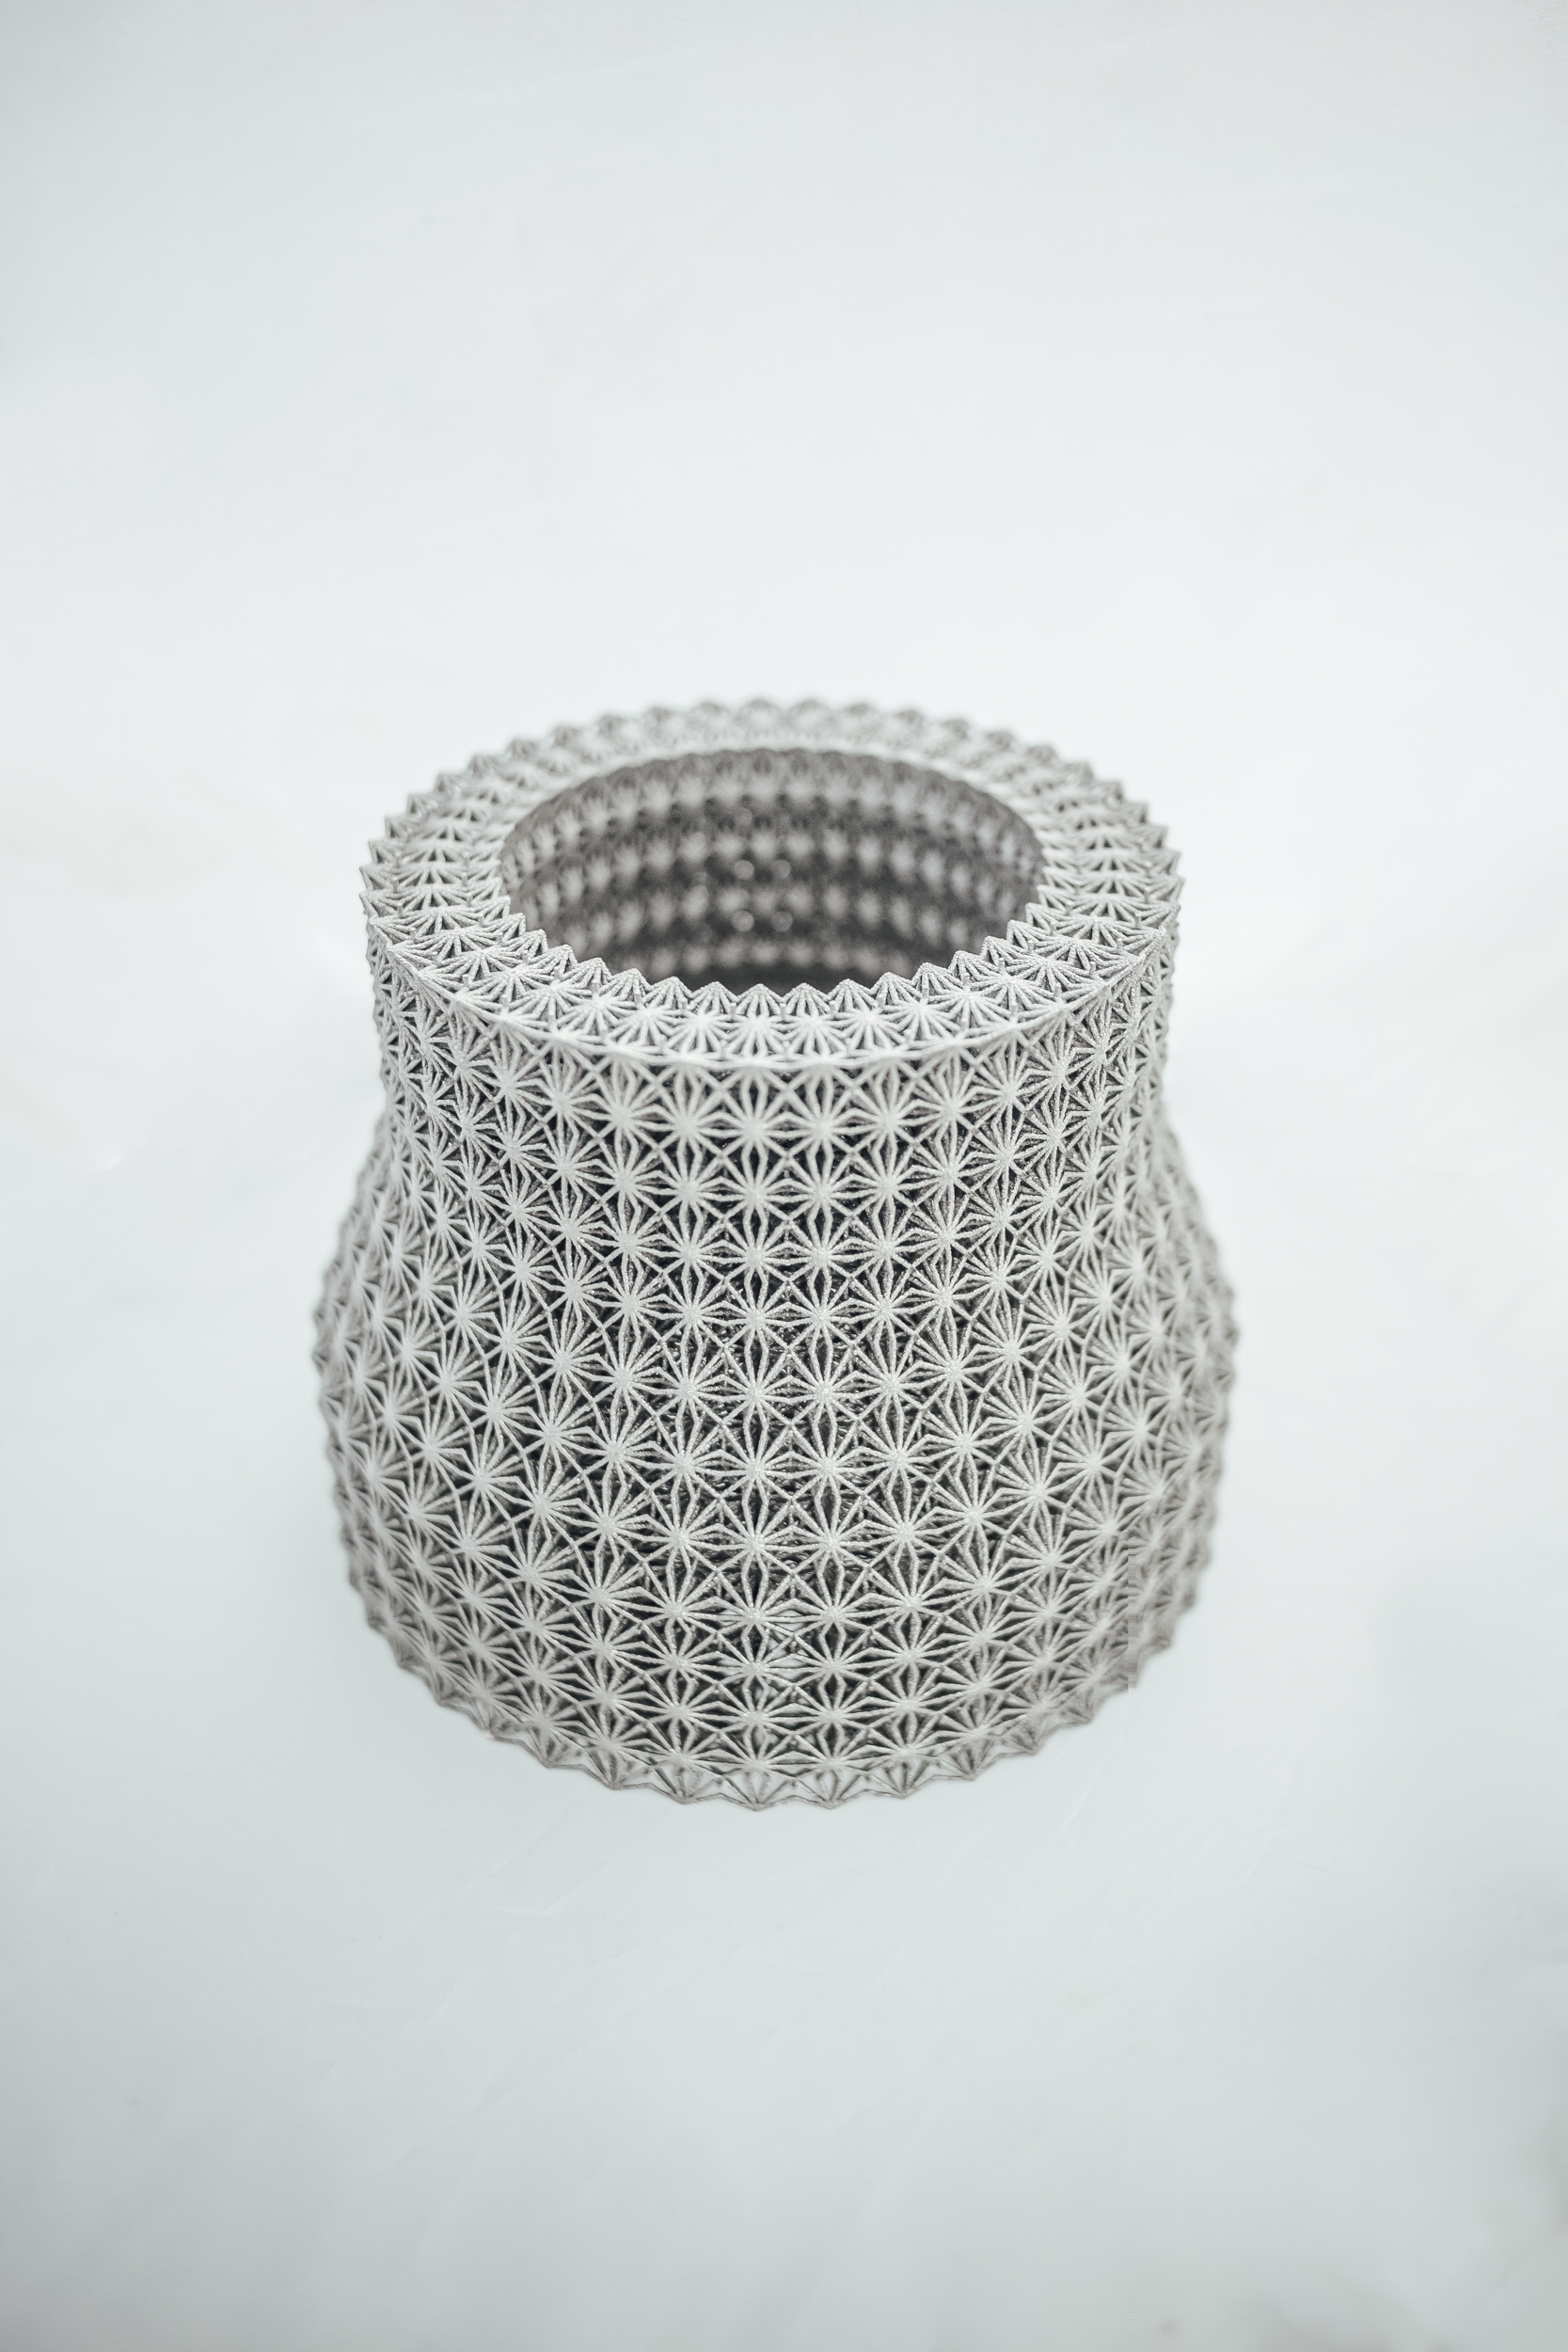 Artifact: Lattice structure